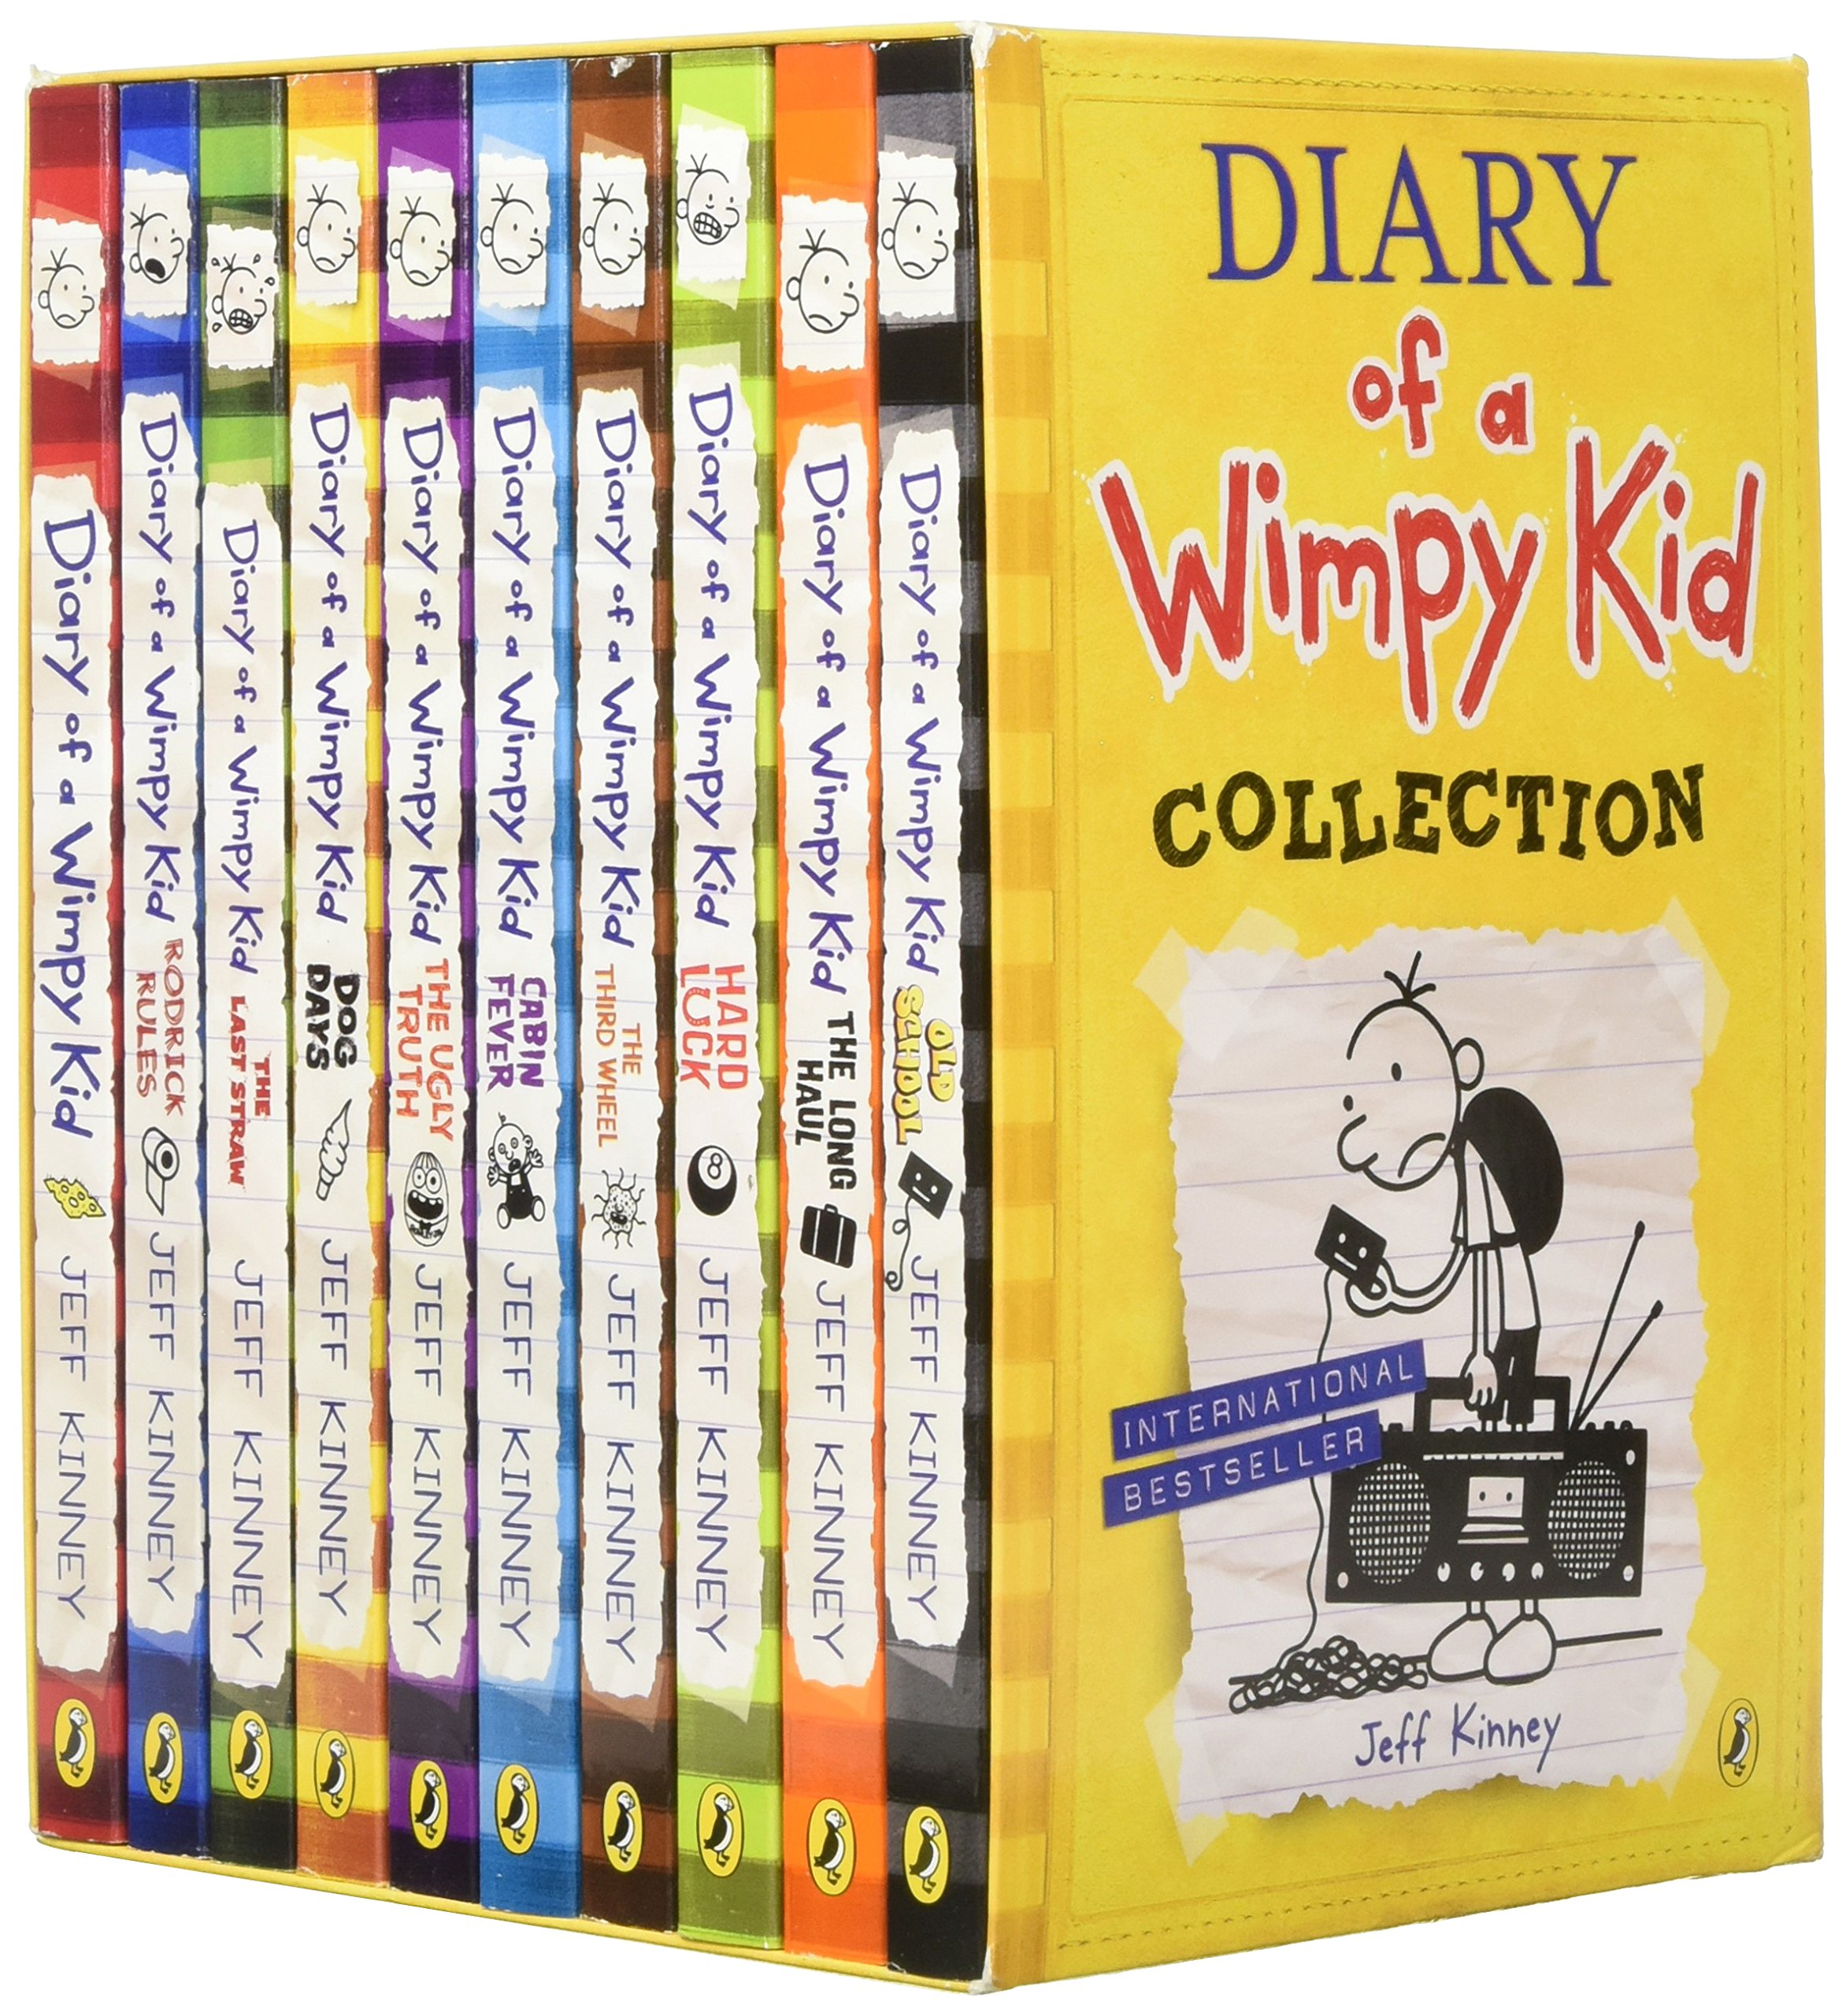 Diary of a wimpy kid collection set of 10 9780141385839 amazon diary of a wimpy kid collection set of 10 9780141385839 amazon books solutioingenieria Gallery